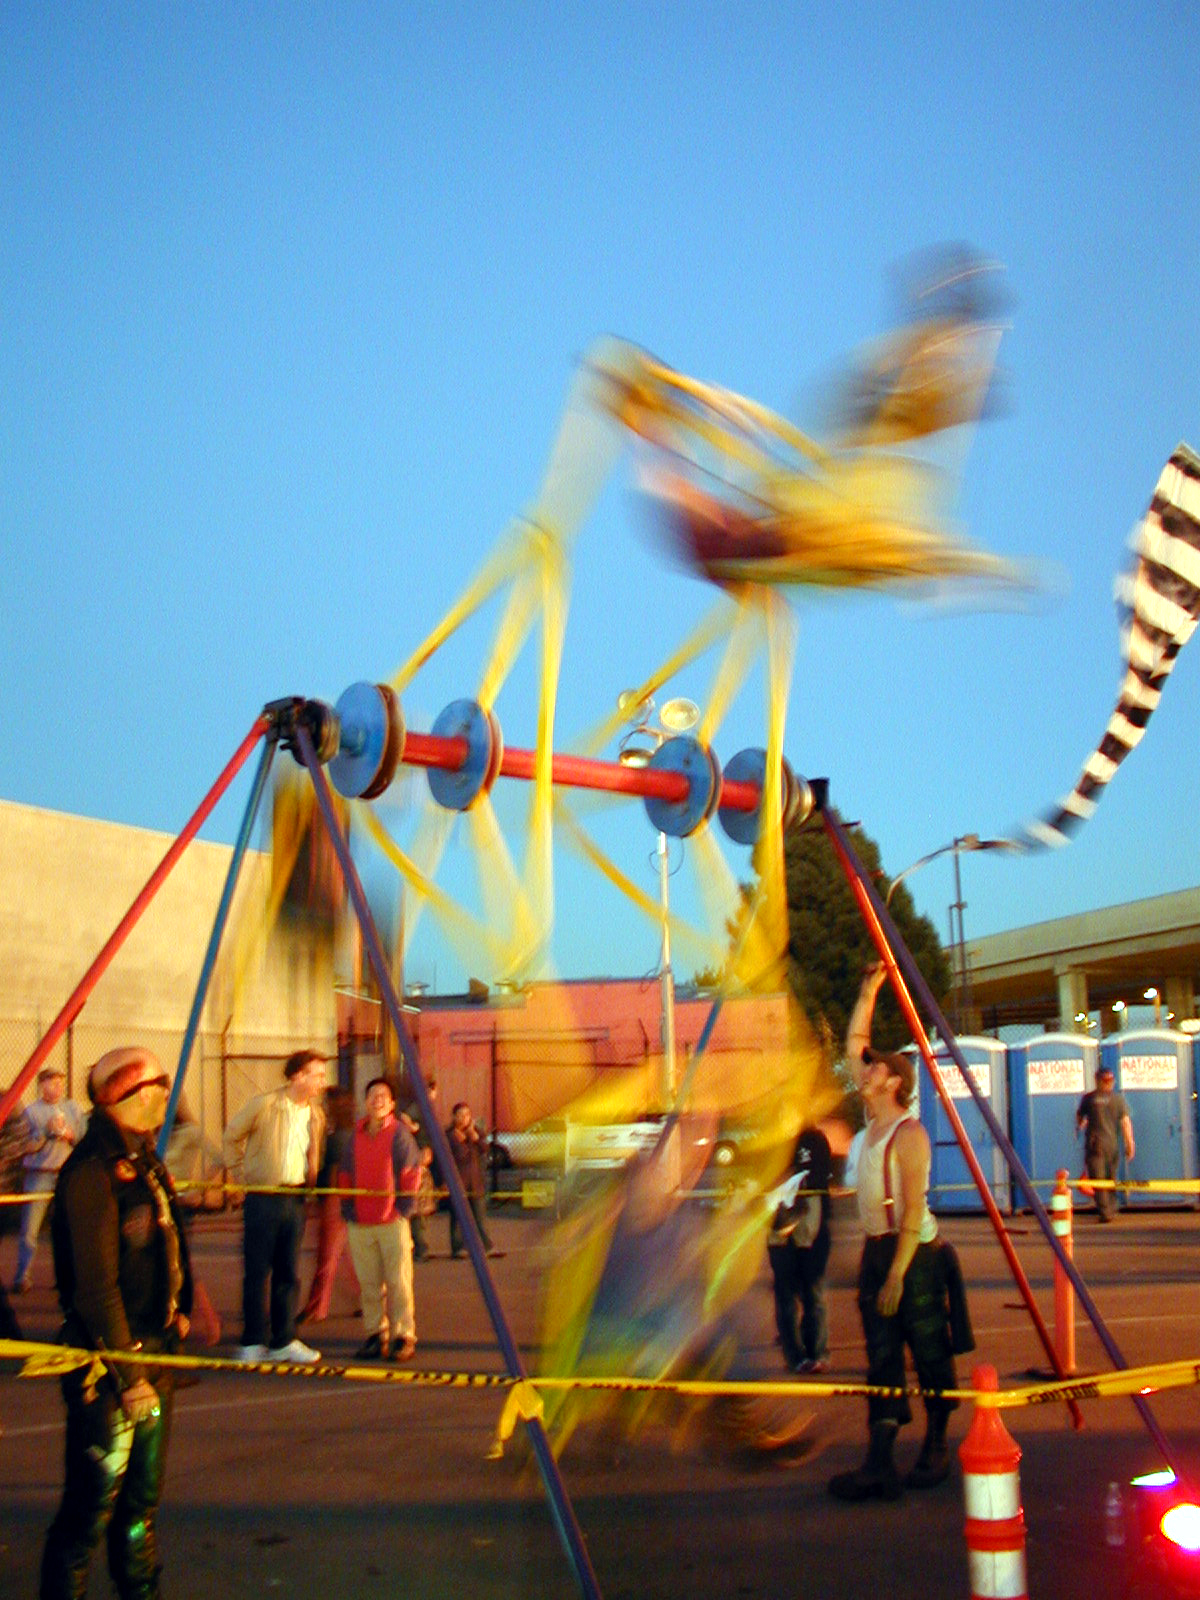 Three Seat Ferris Wheel in motion by Laird